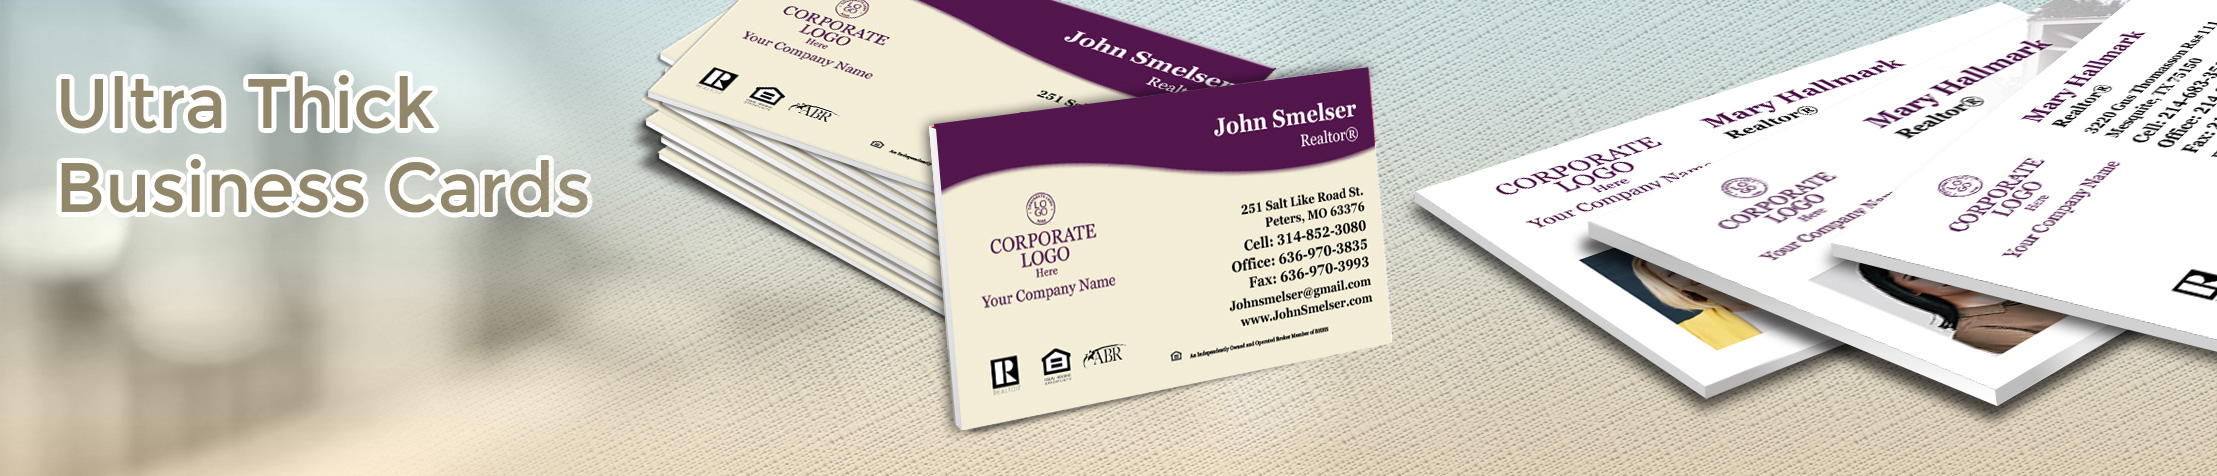 Berkshire Hathaway Real Estate Ultra Thick Business Cards - Berkshire Hathaway - Luxury, Thick Stock Business Cards with a Matte Finish for Realtors | BestPrintBuy.com